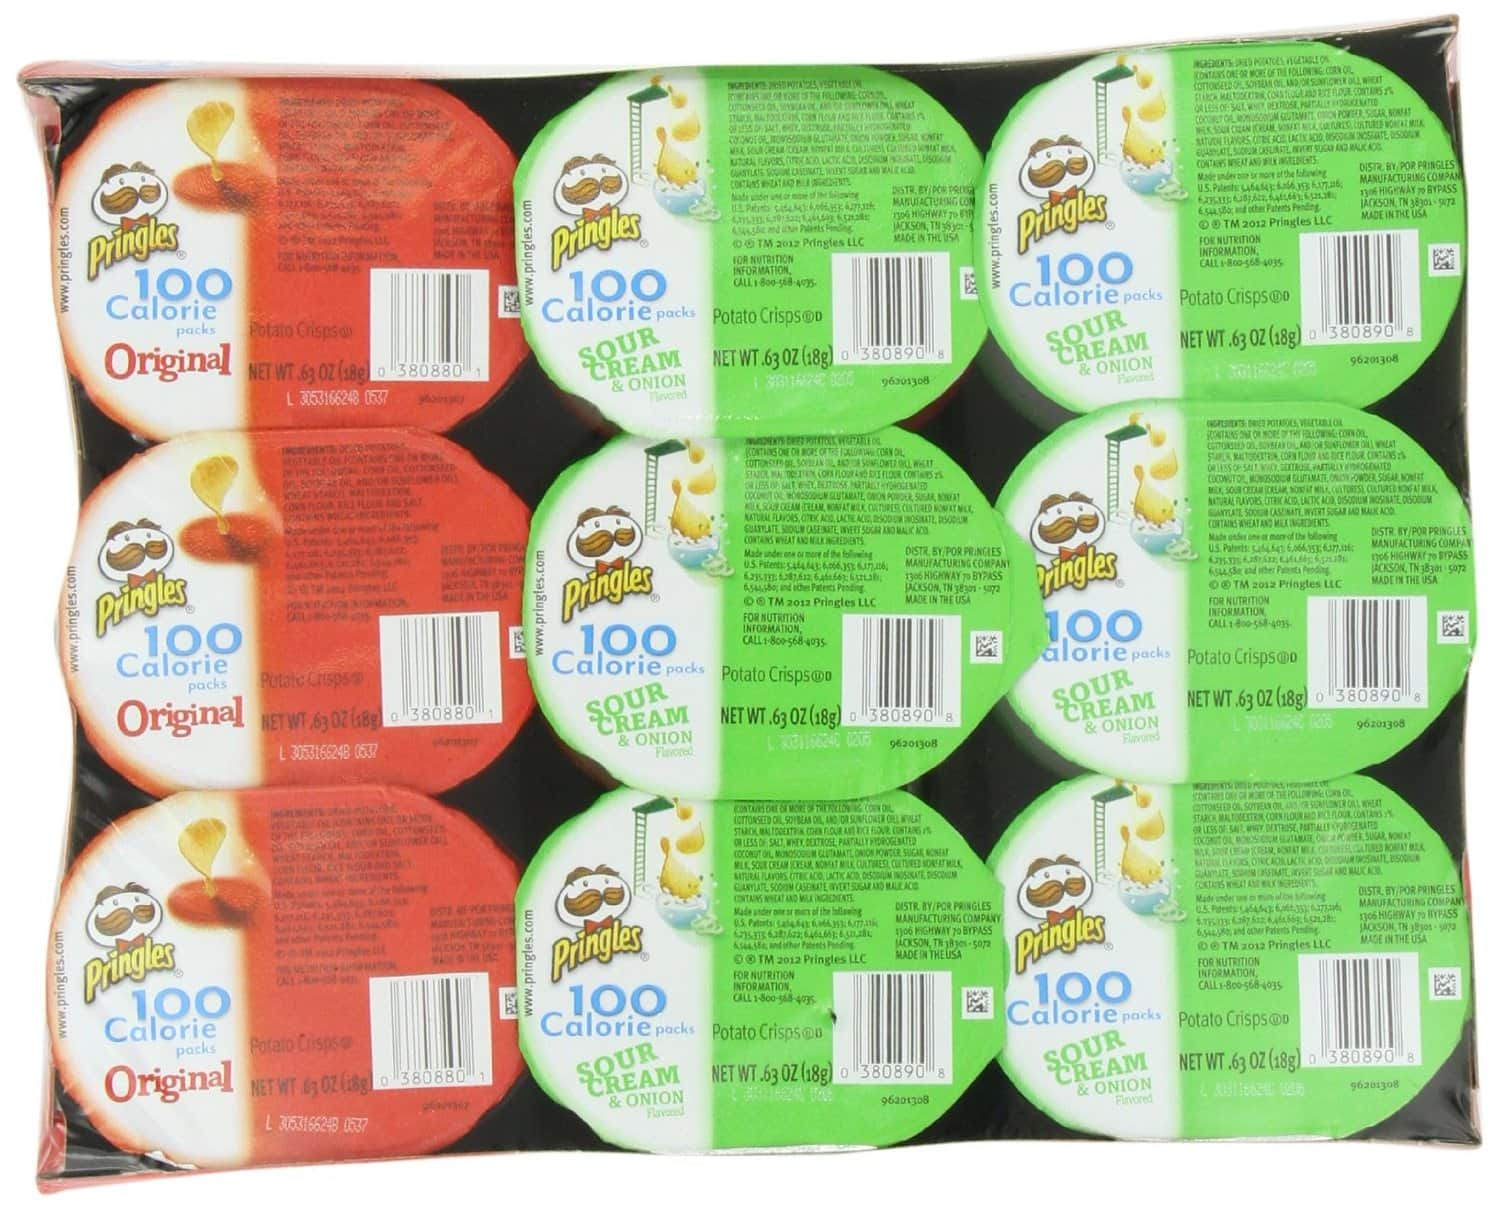 18-Count Pringles Snack Stacks - As Low As $3.89 - Amazon S&S